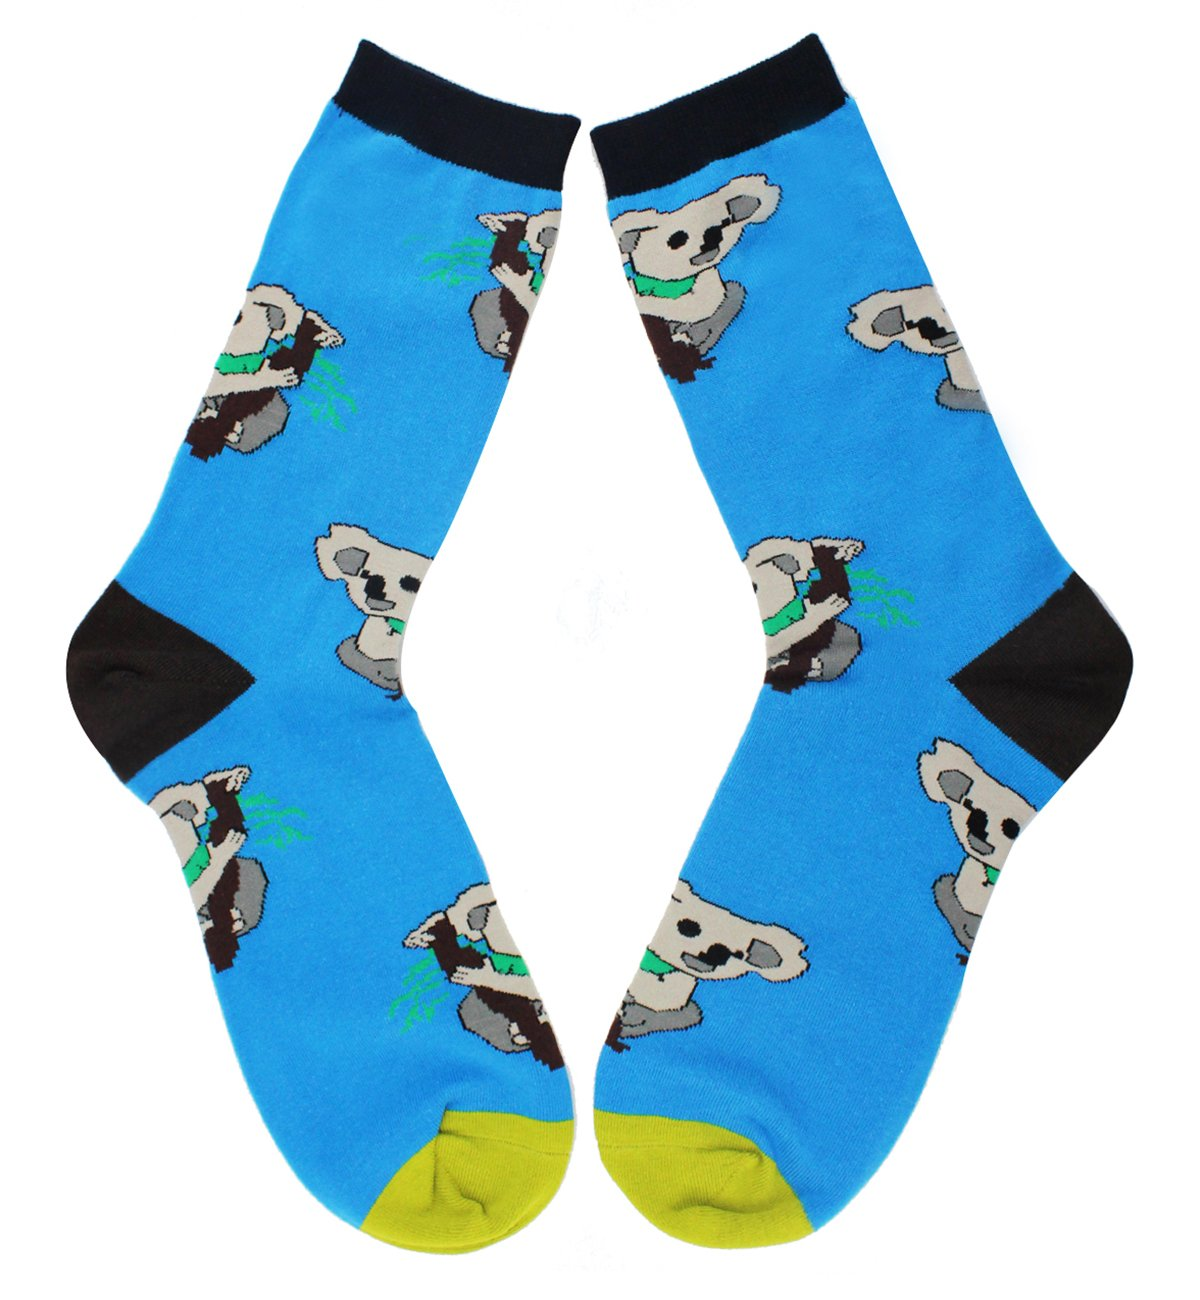 3 Pack Men's Crazy Cool Animals Pattern Novelty Crew Cotton Funny Socks by Happypop (Image #3)